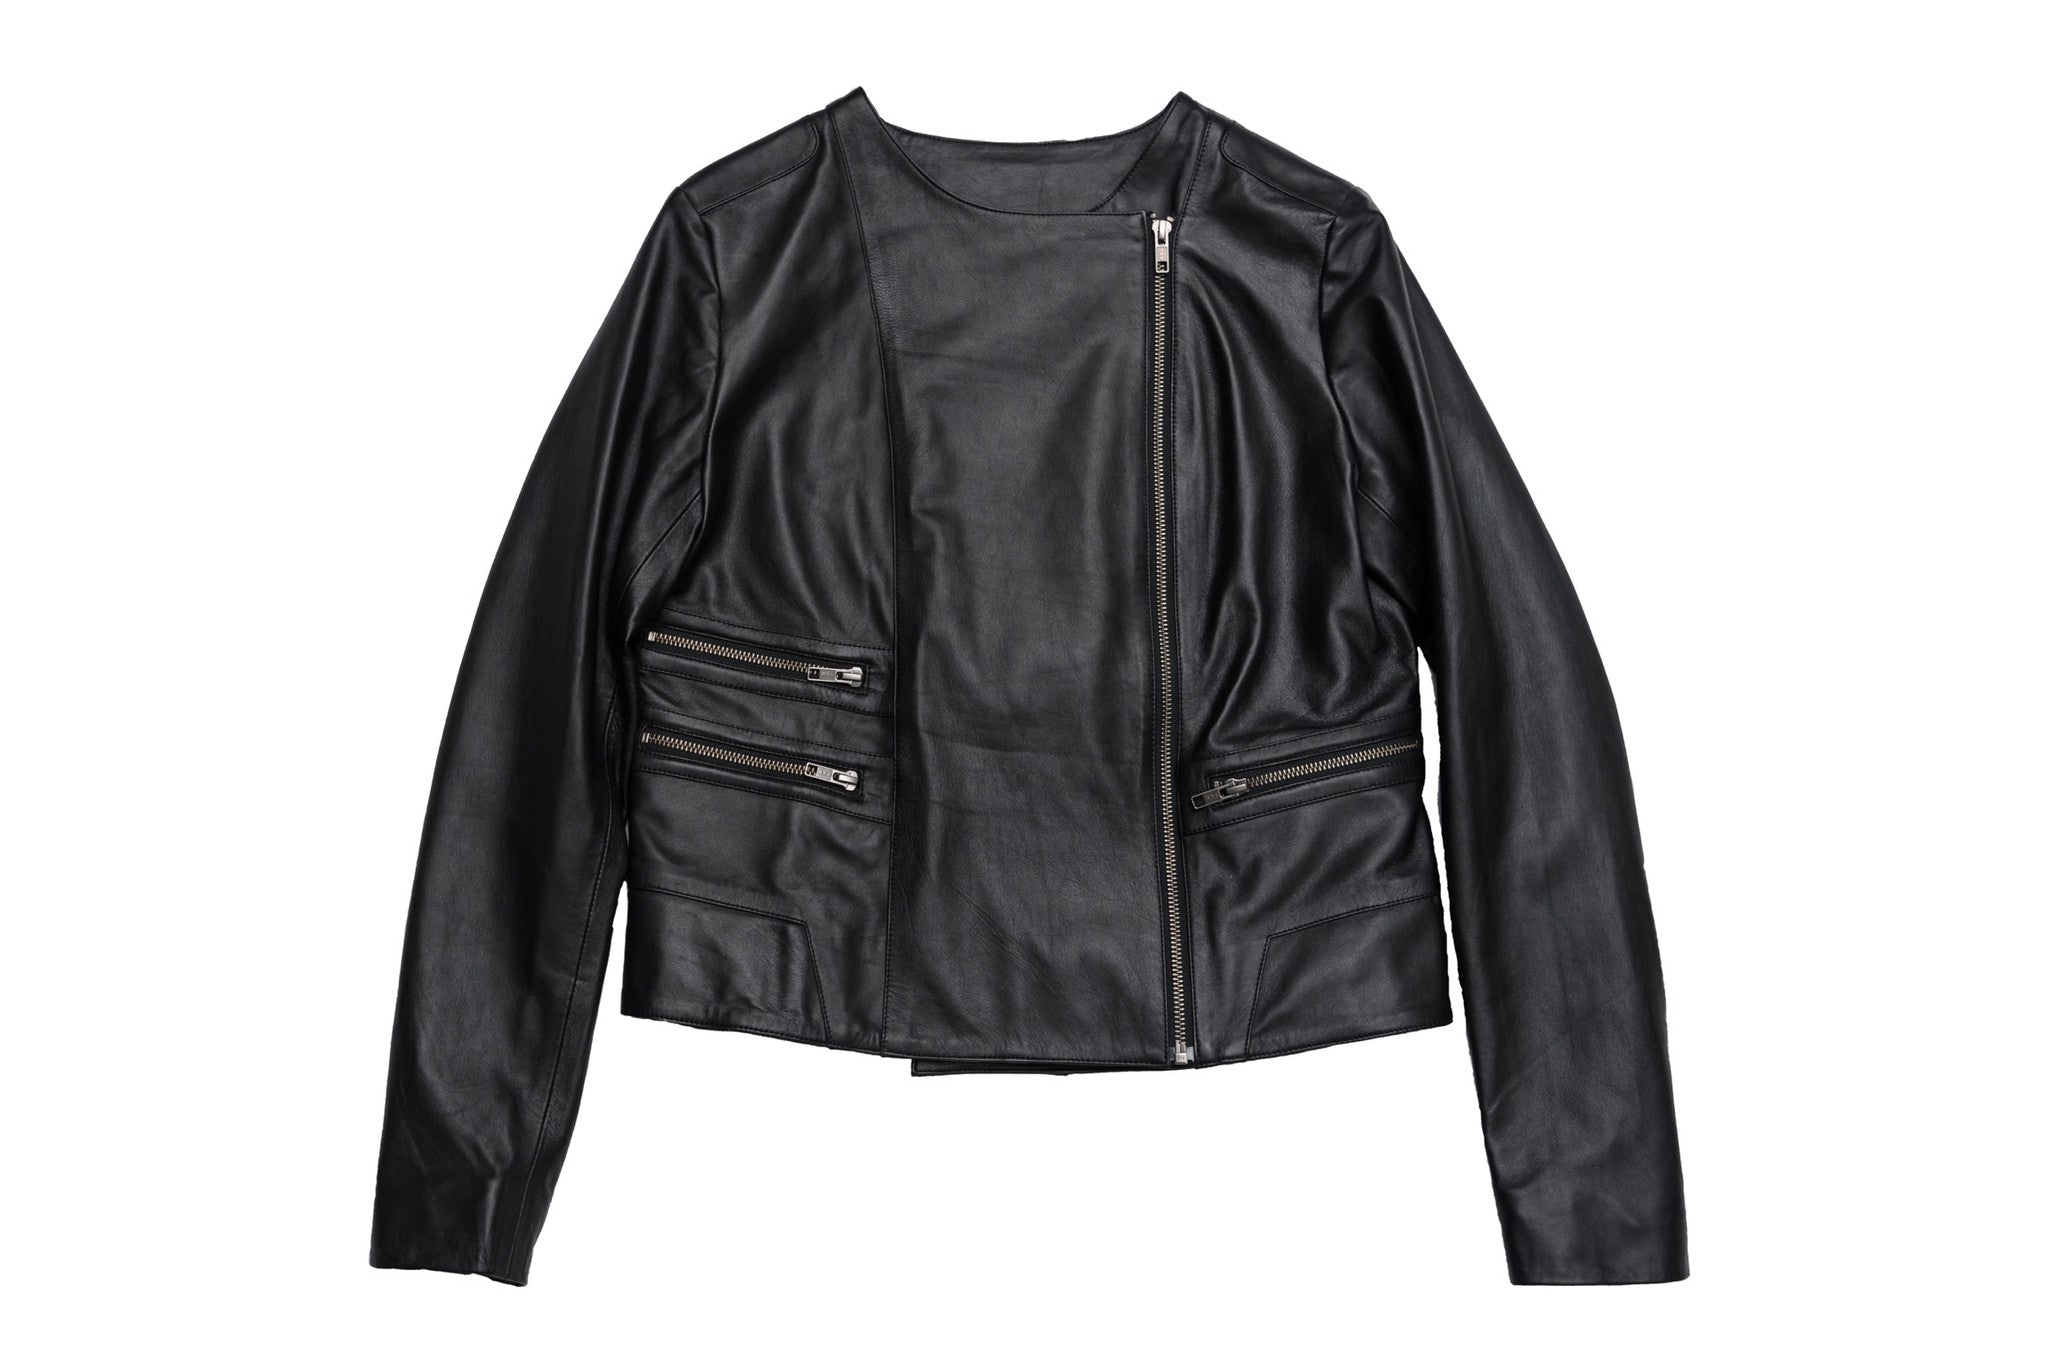 Leather biker jacket available in black or navy. Zip details. Made from 100% authentic leather